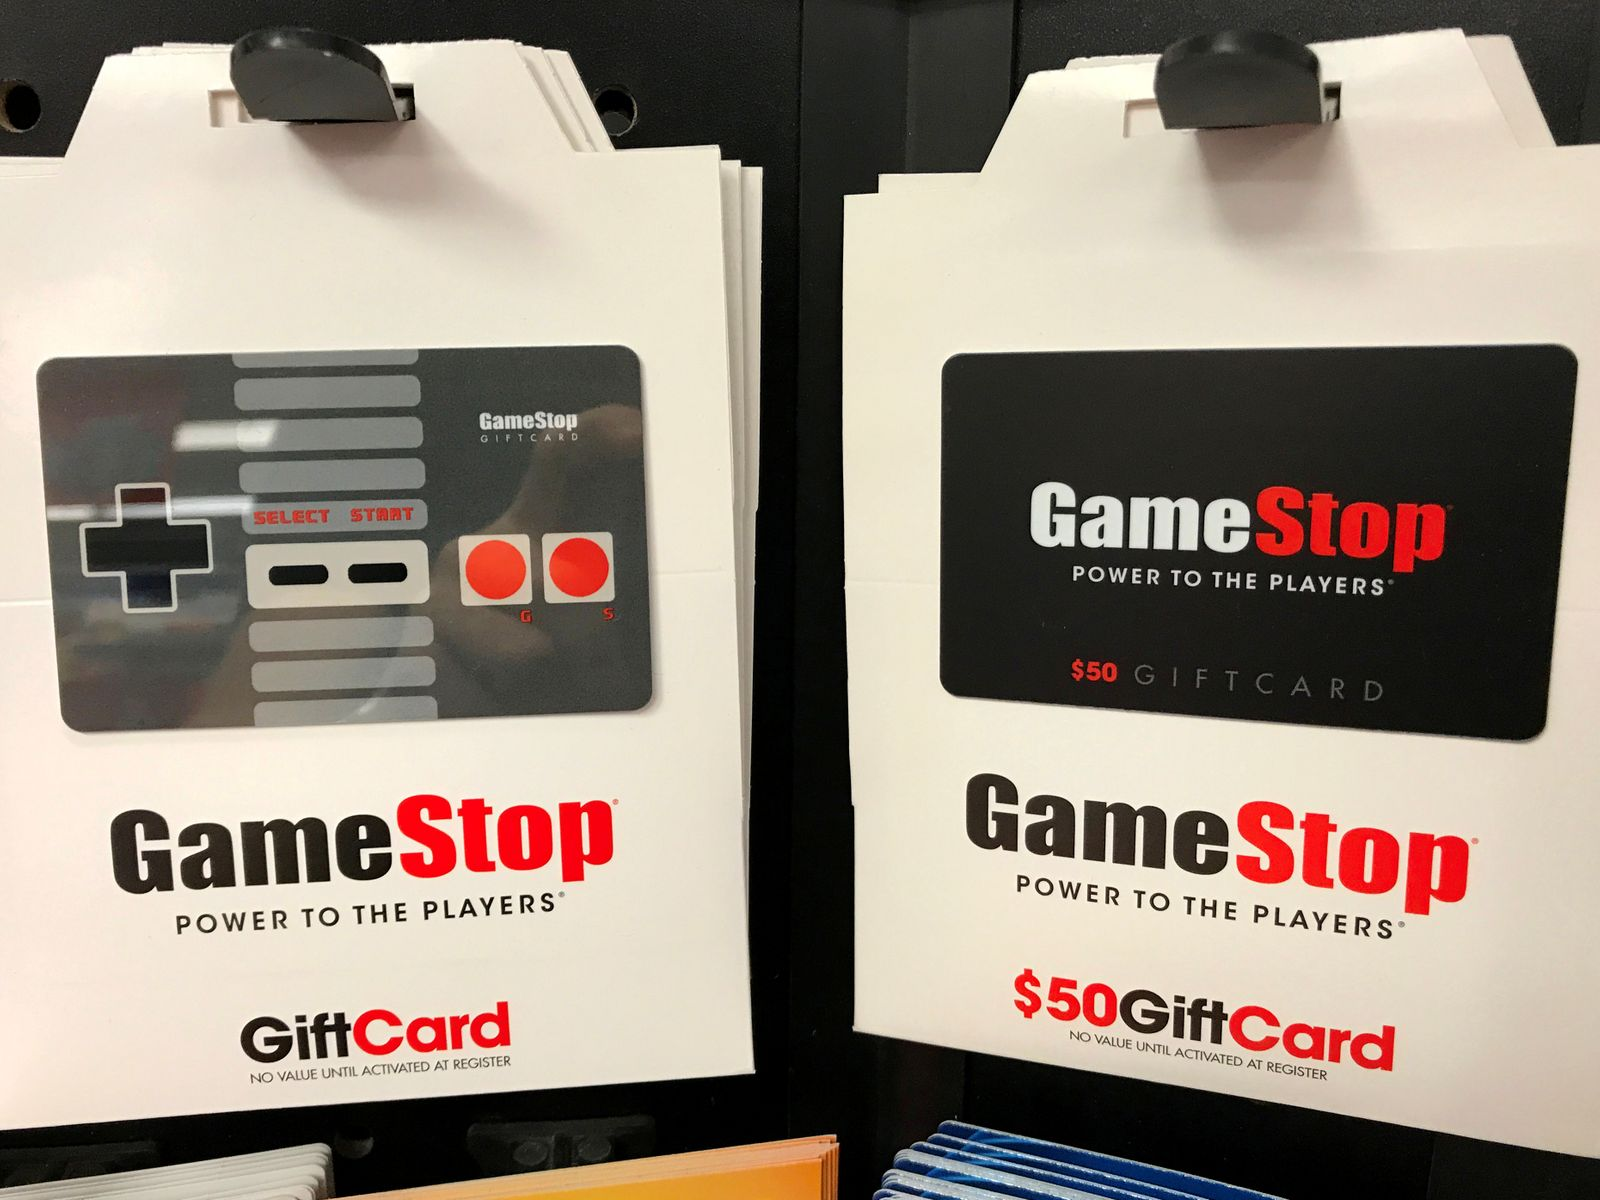 FILE PHOTO: GameStop gift cards are shown for sale at a GameStop Inc. store in Encinitas, California